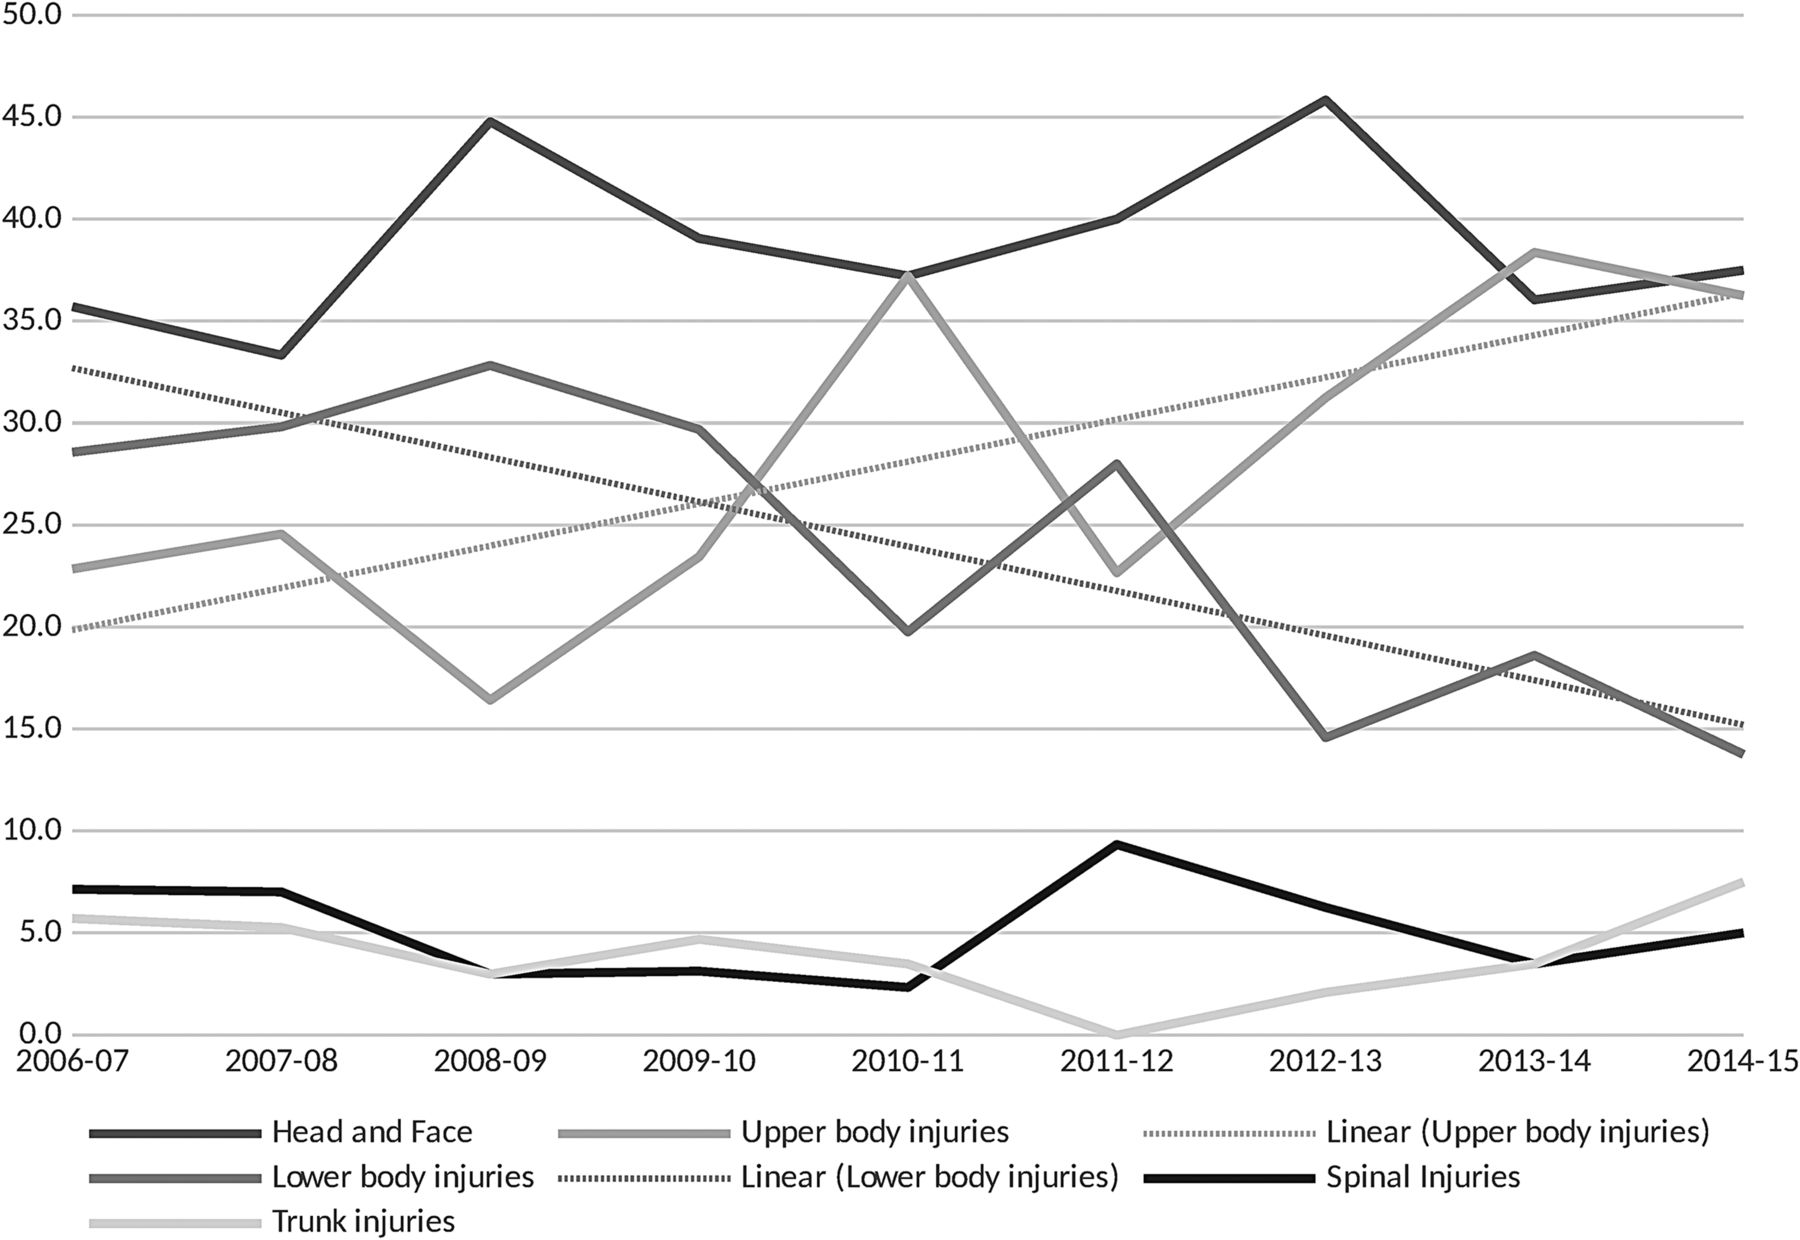 Injuries In World Junior Ice Hockey Championships Between 2006 And